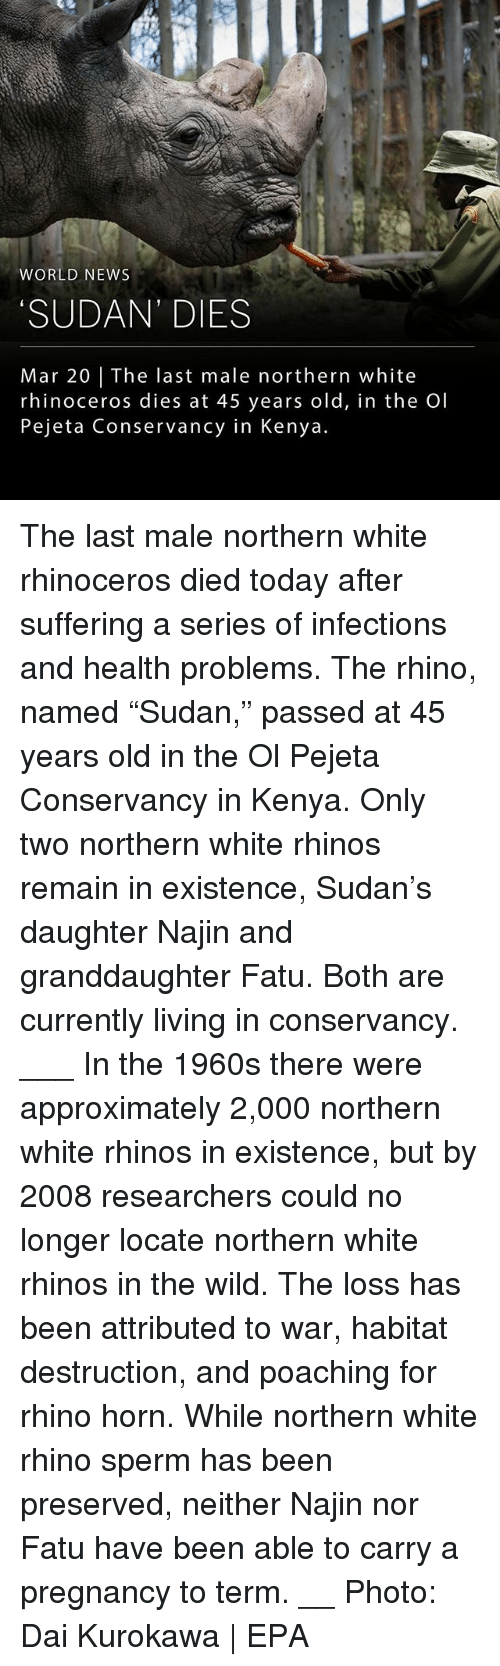 "epa: WORLD NEWS  SUDAN' DIES  Mar 20 | The last male northern white  rhinoceros dies at 45 years old, in the Ol  Pejeta Conservancy in Kenya. The last male northern white rhinoceros died today after suffering a series of infections and health problems. The rhino, named ""Sudan,"" passed at 45 years old in the Ol Pejeta Conservancy in Kenya. Only two northern white rhinos remain in existence, Sudan's daughter Najin and granddaughter Fatu. Both are currently living in conservancy. ___ In the 1960s there were approximately 2,000 northern white rhinos in existence, but by 2008 researchers could no longer locate northern white rhinos in the wild. The loss has been attributed to war, habitat destruction, and poaching for rhino horn. While northern white rhino sperm has been preserved, neither Najin nor Fatu have been able to carry a pregnancy to term. __ Photo: Dai Kurokawa 